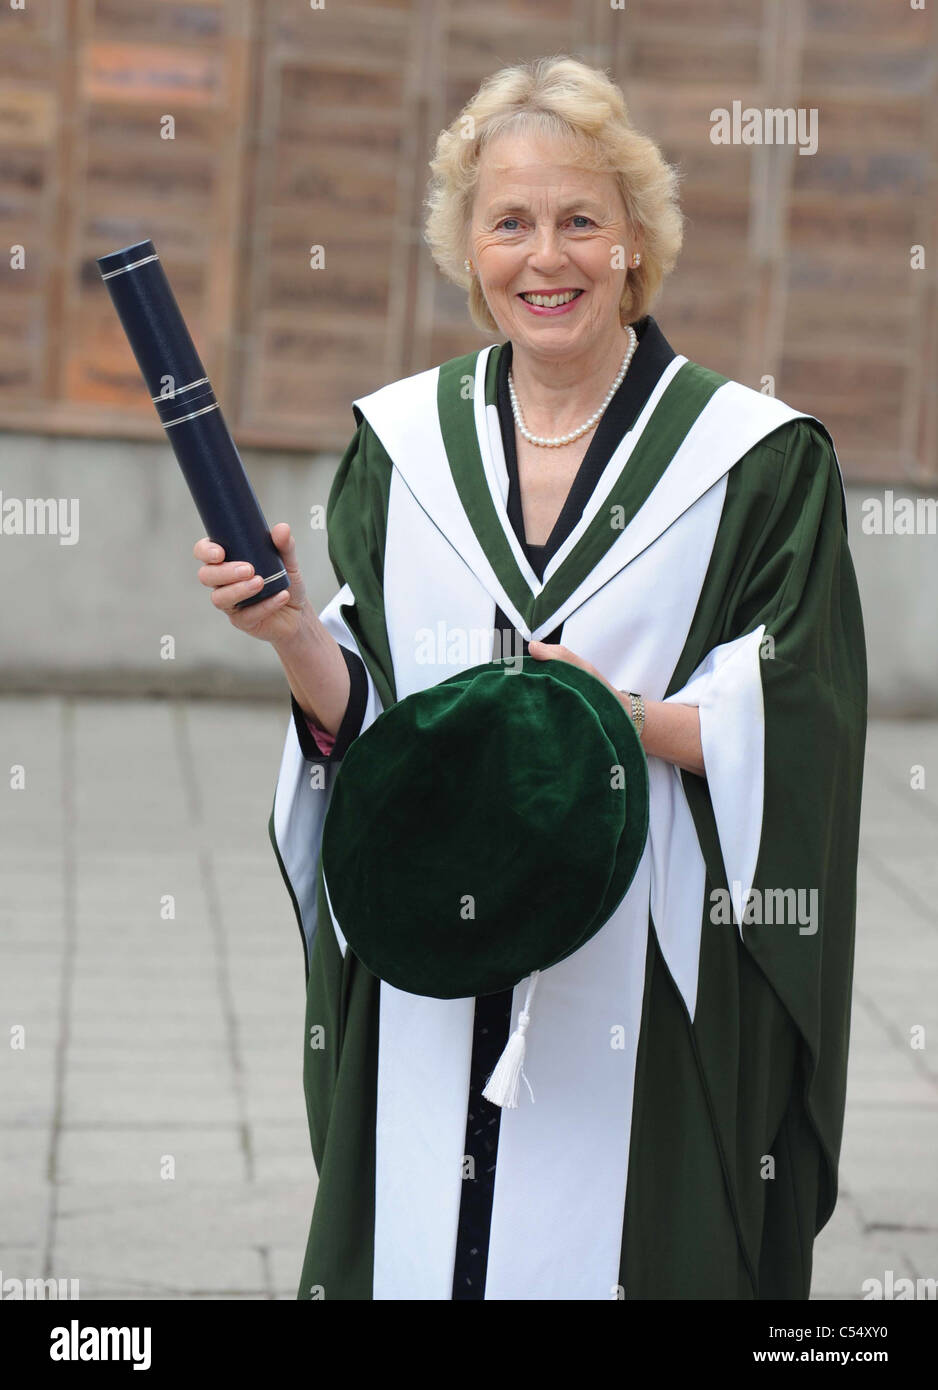 honorary doctorates at Queen Margaret University for Professor Alison Tierney CBE - Stock Image